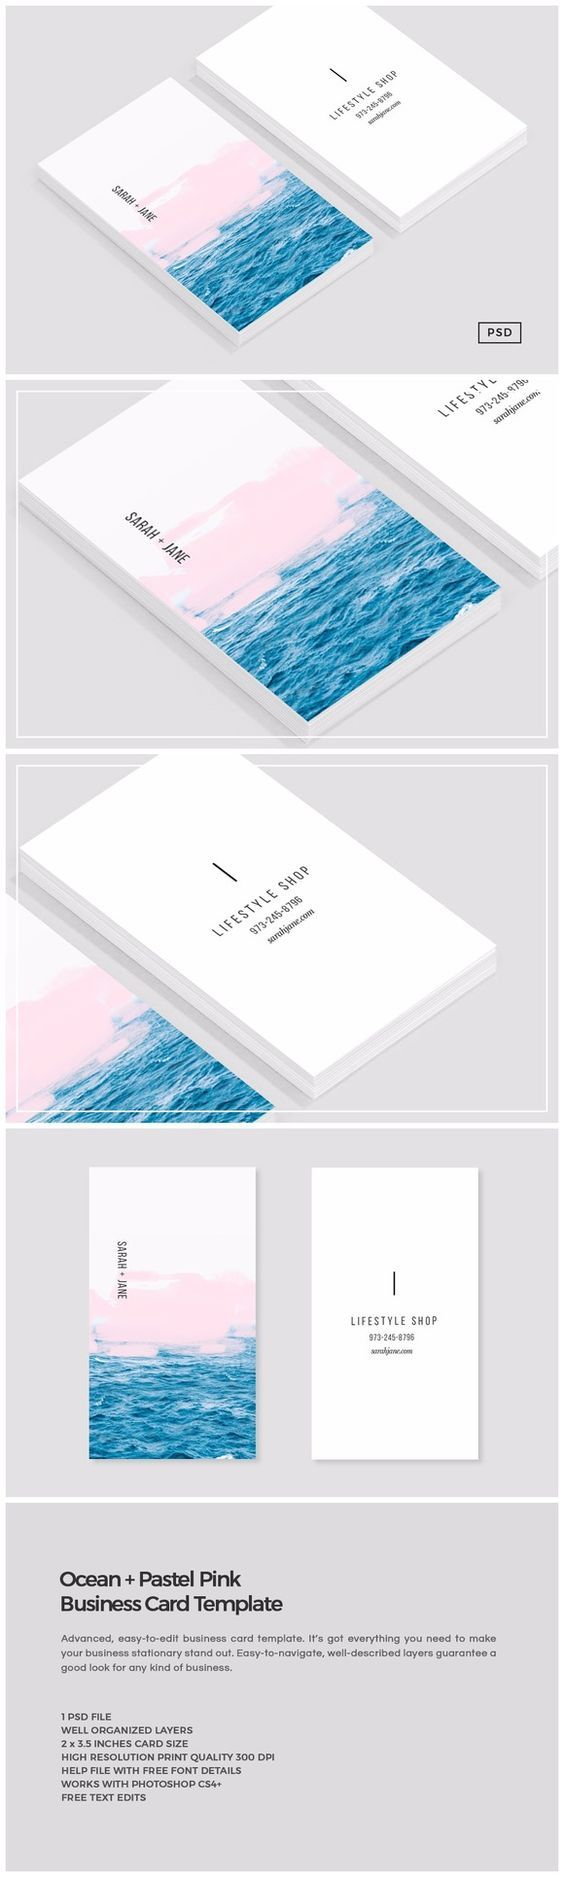 Ocean + Pink Business Card Template by Design Co. on @creativemarket: